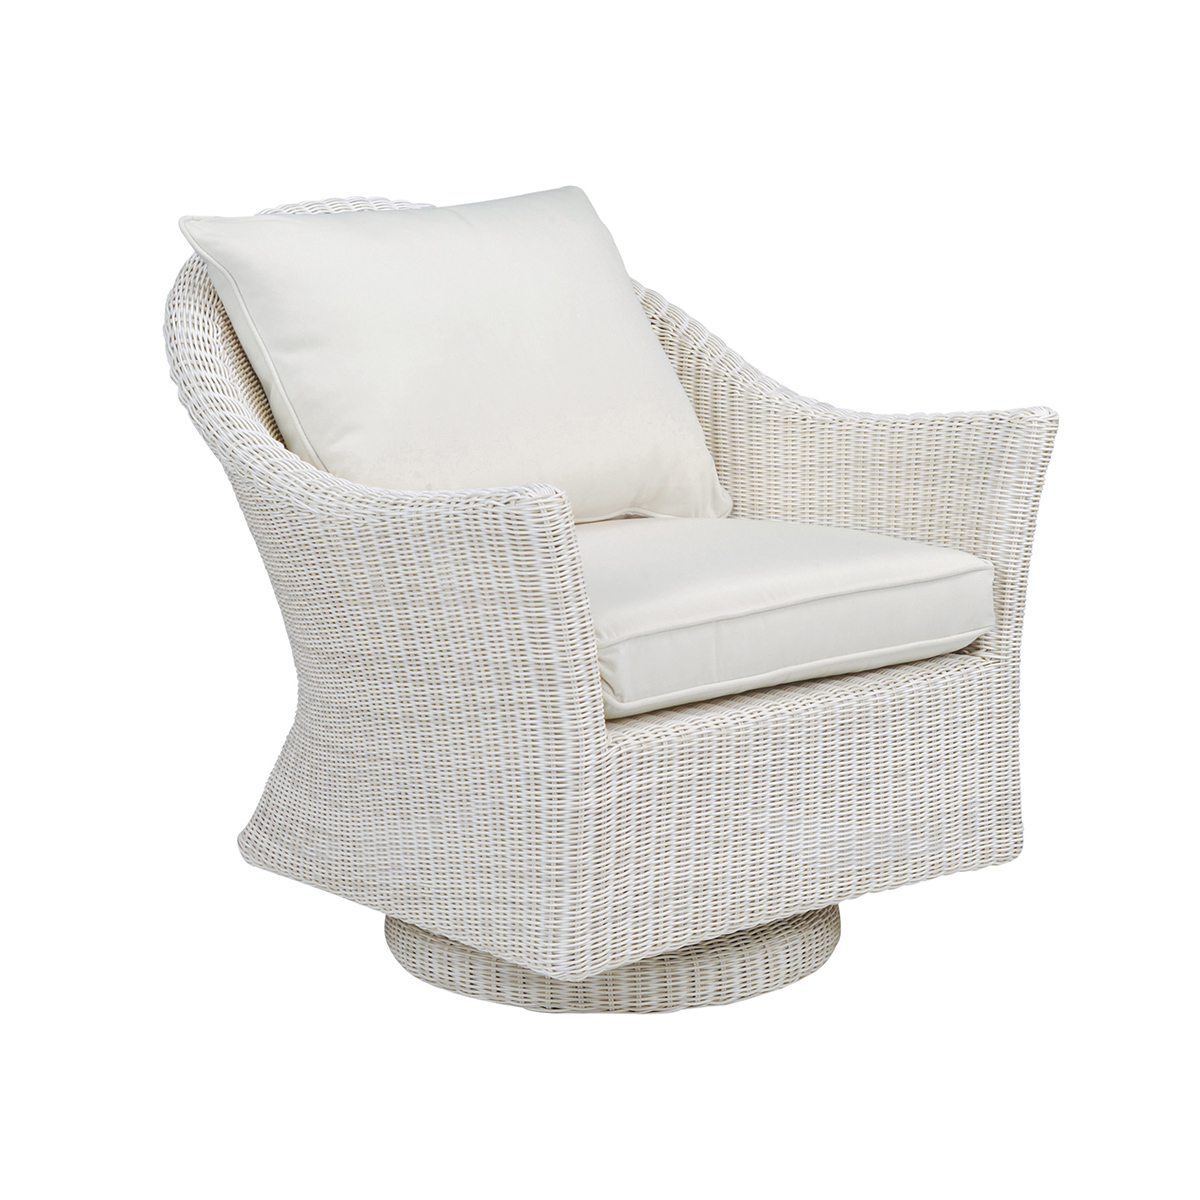 Cape Cod Outdoor Furniture Collection Deep Seating